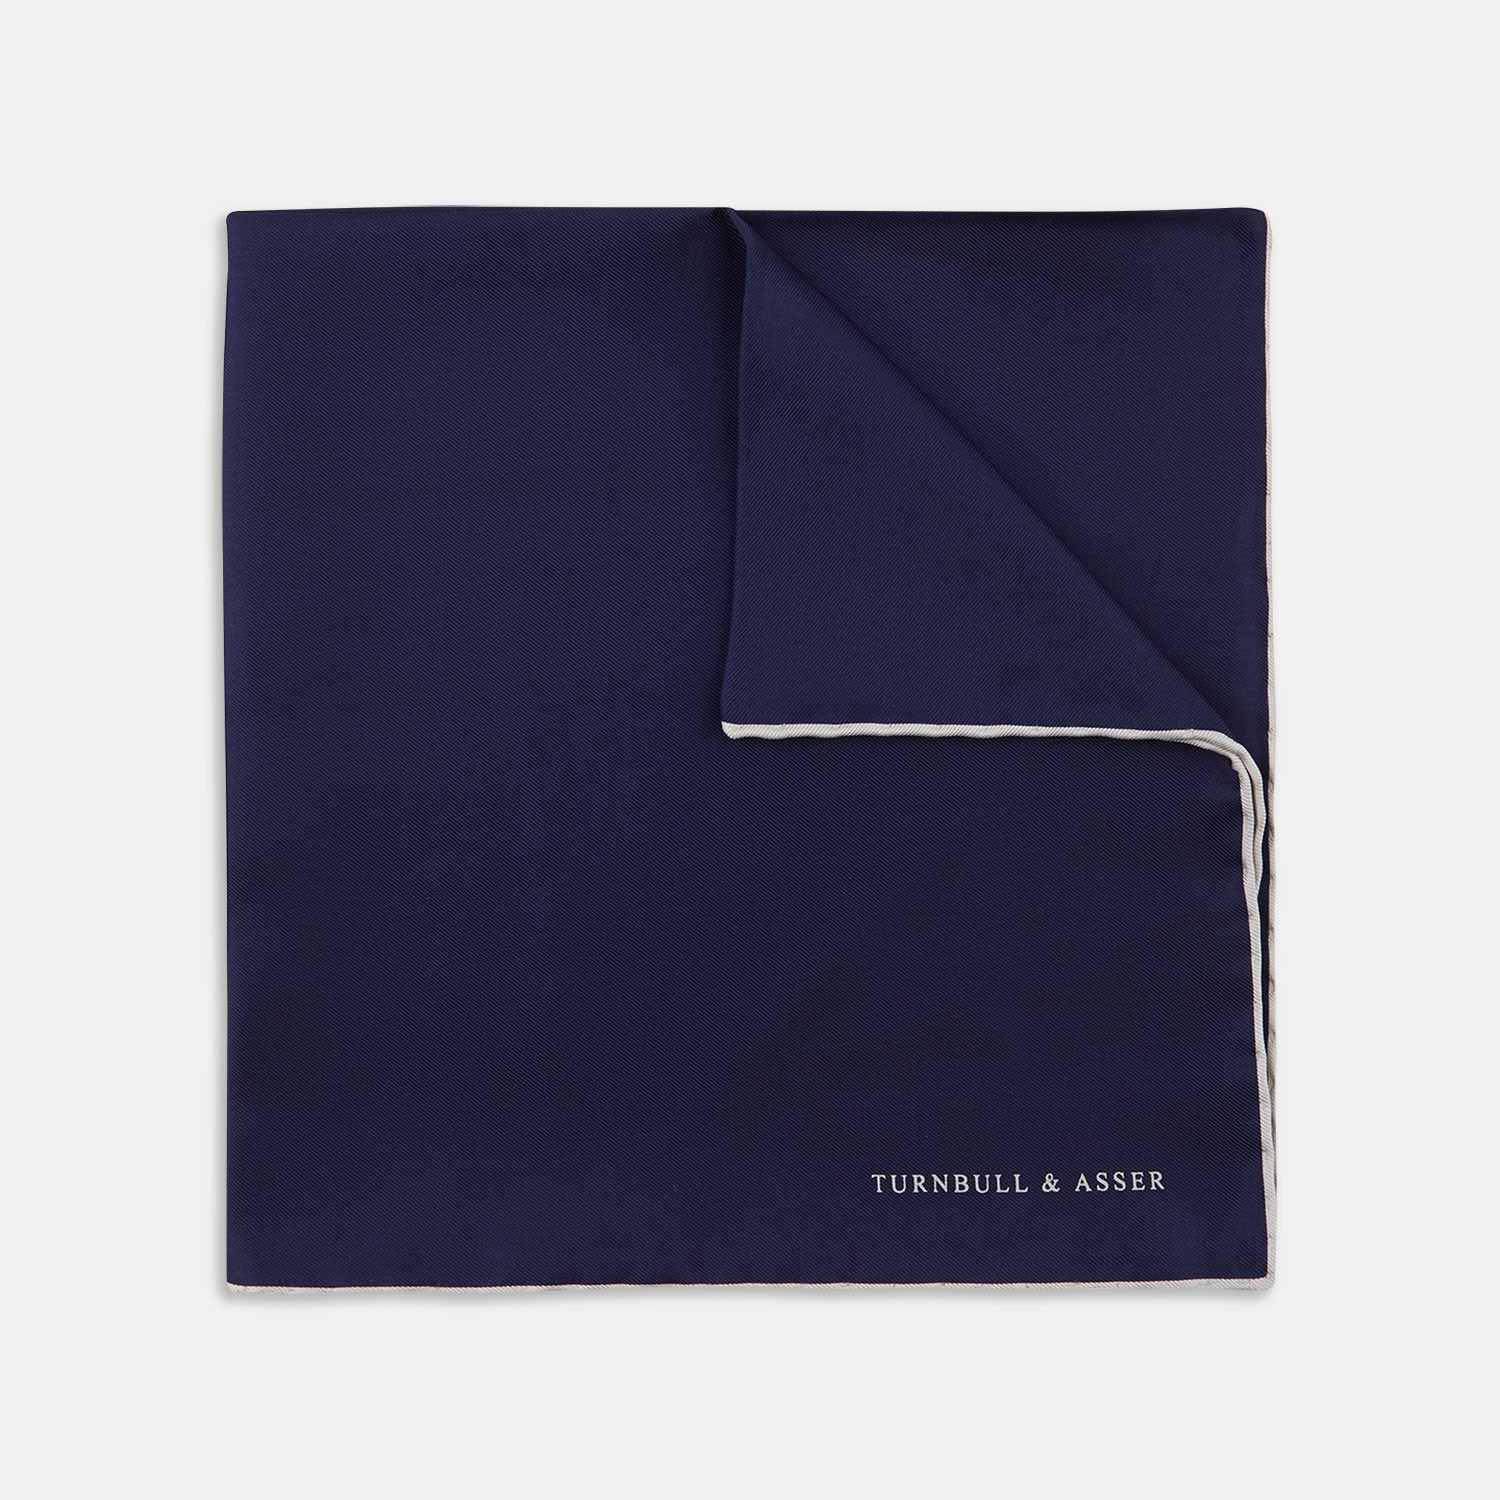 Turnbull & Asser main tie image